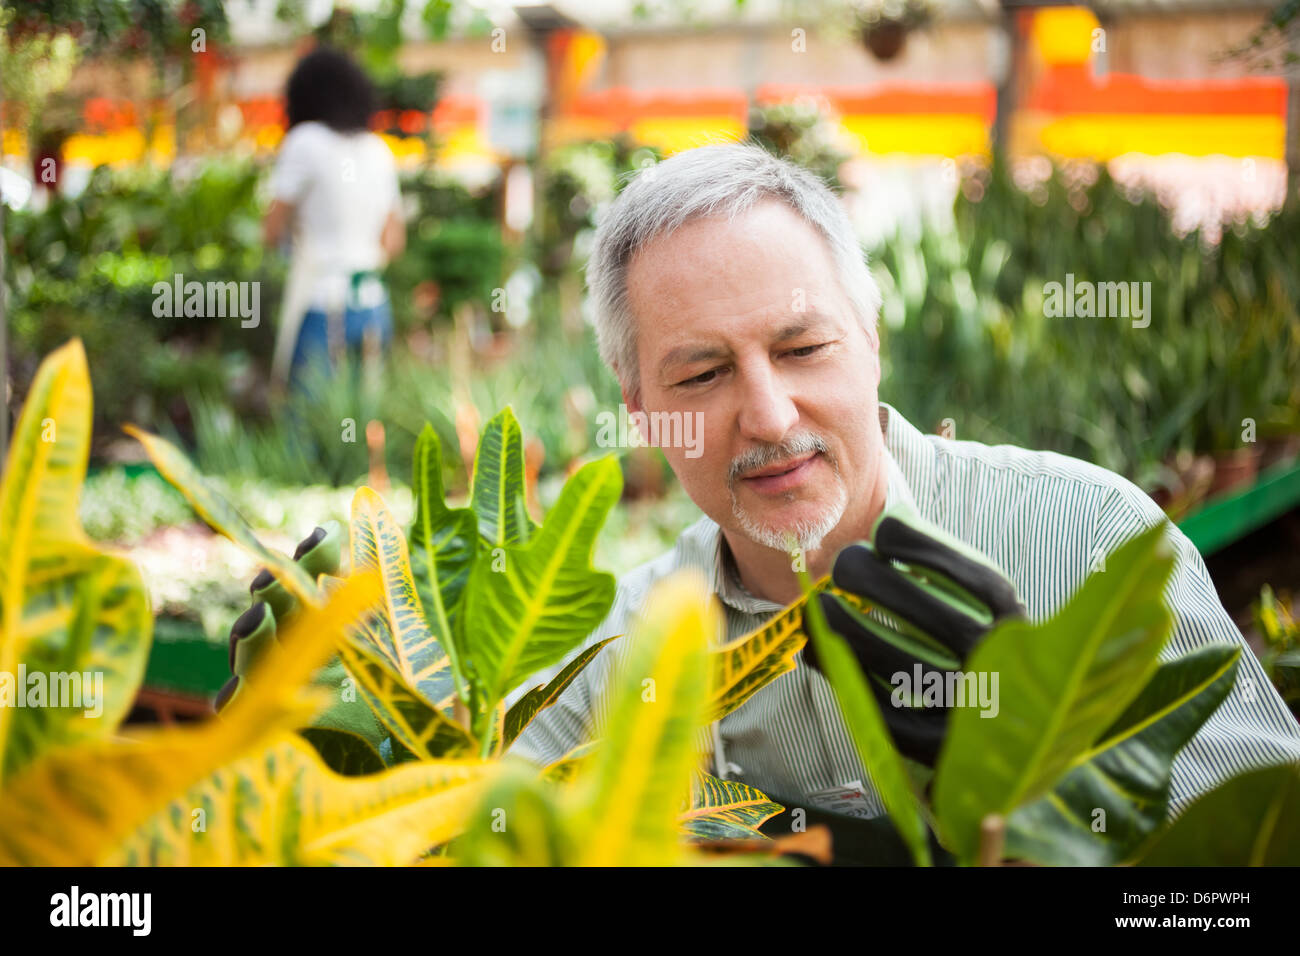 Man checking a plant in a greenhouse - Stock Image